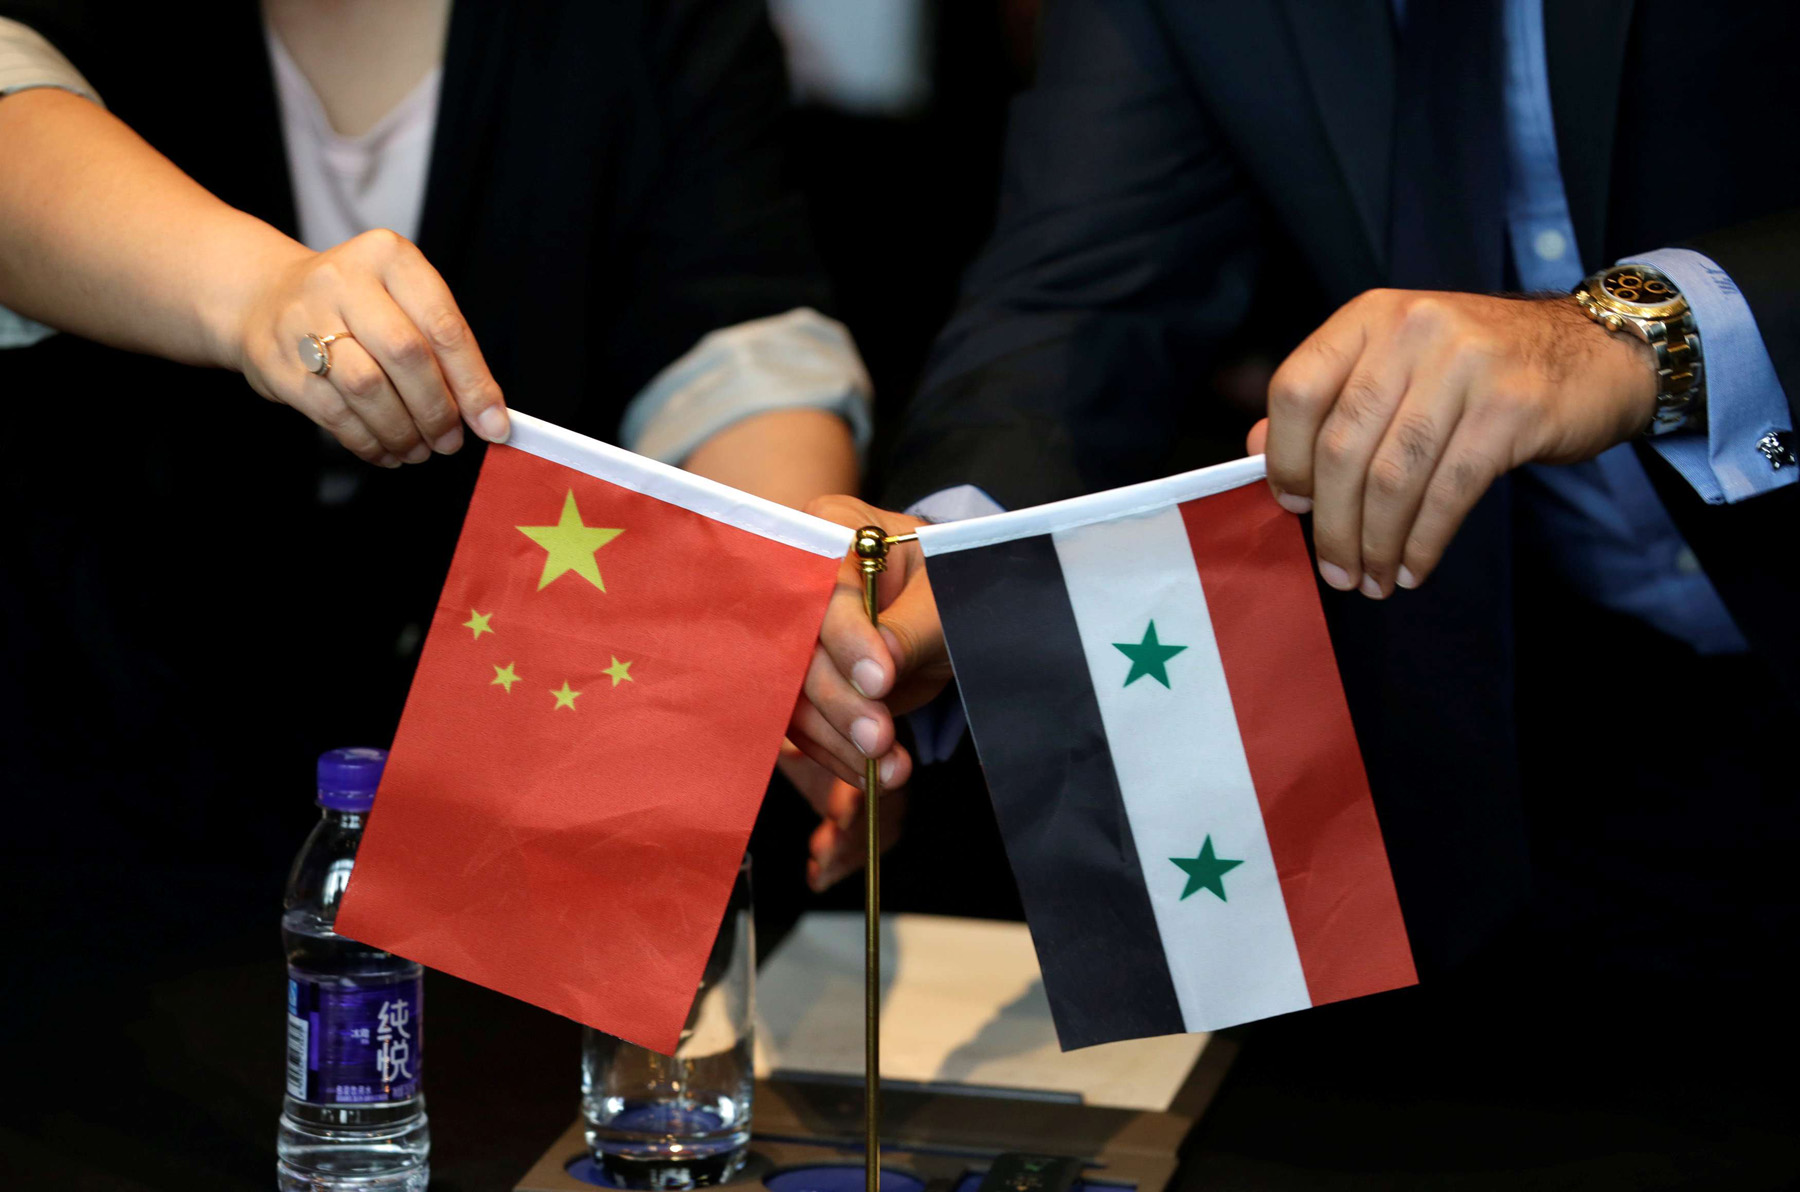 Chinese and Syrian businessmen set up their national flags during a meeting to discuss reconstruction projects in Syria. (Reuters)